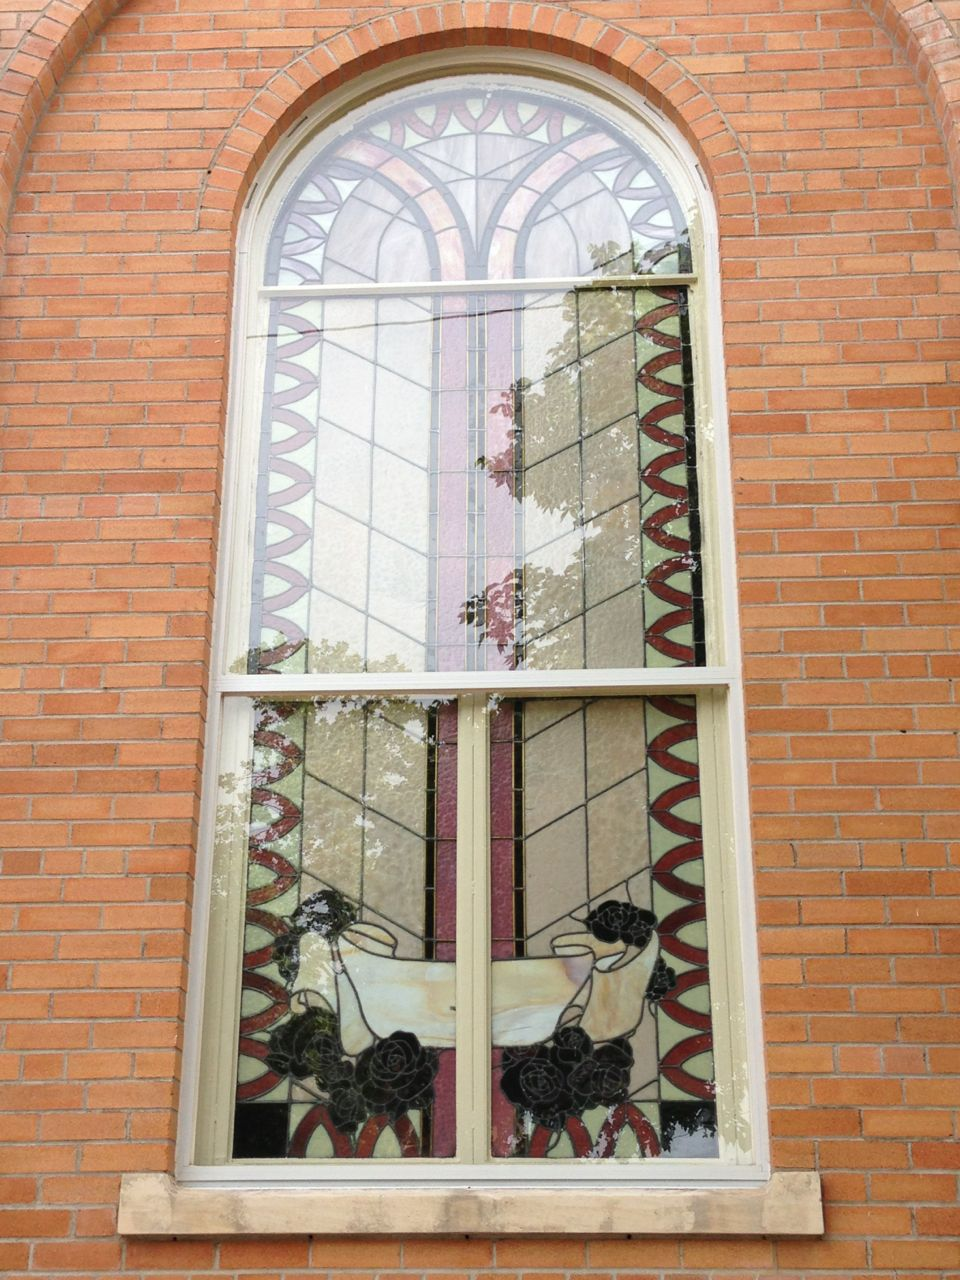 Our_Lady_of_Guadalupe_Stained_Glass_Window_-_After_Restoration.jpg